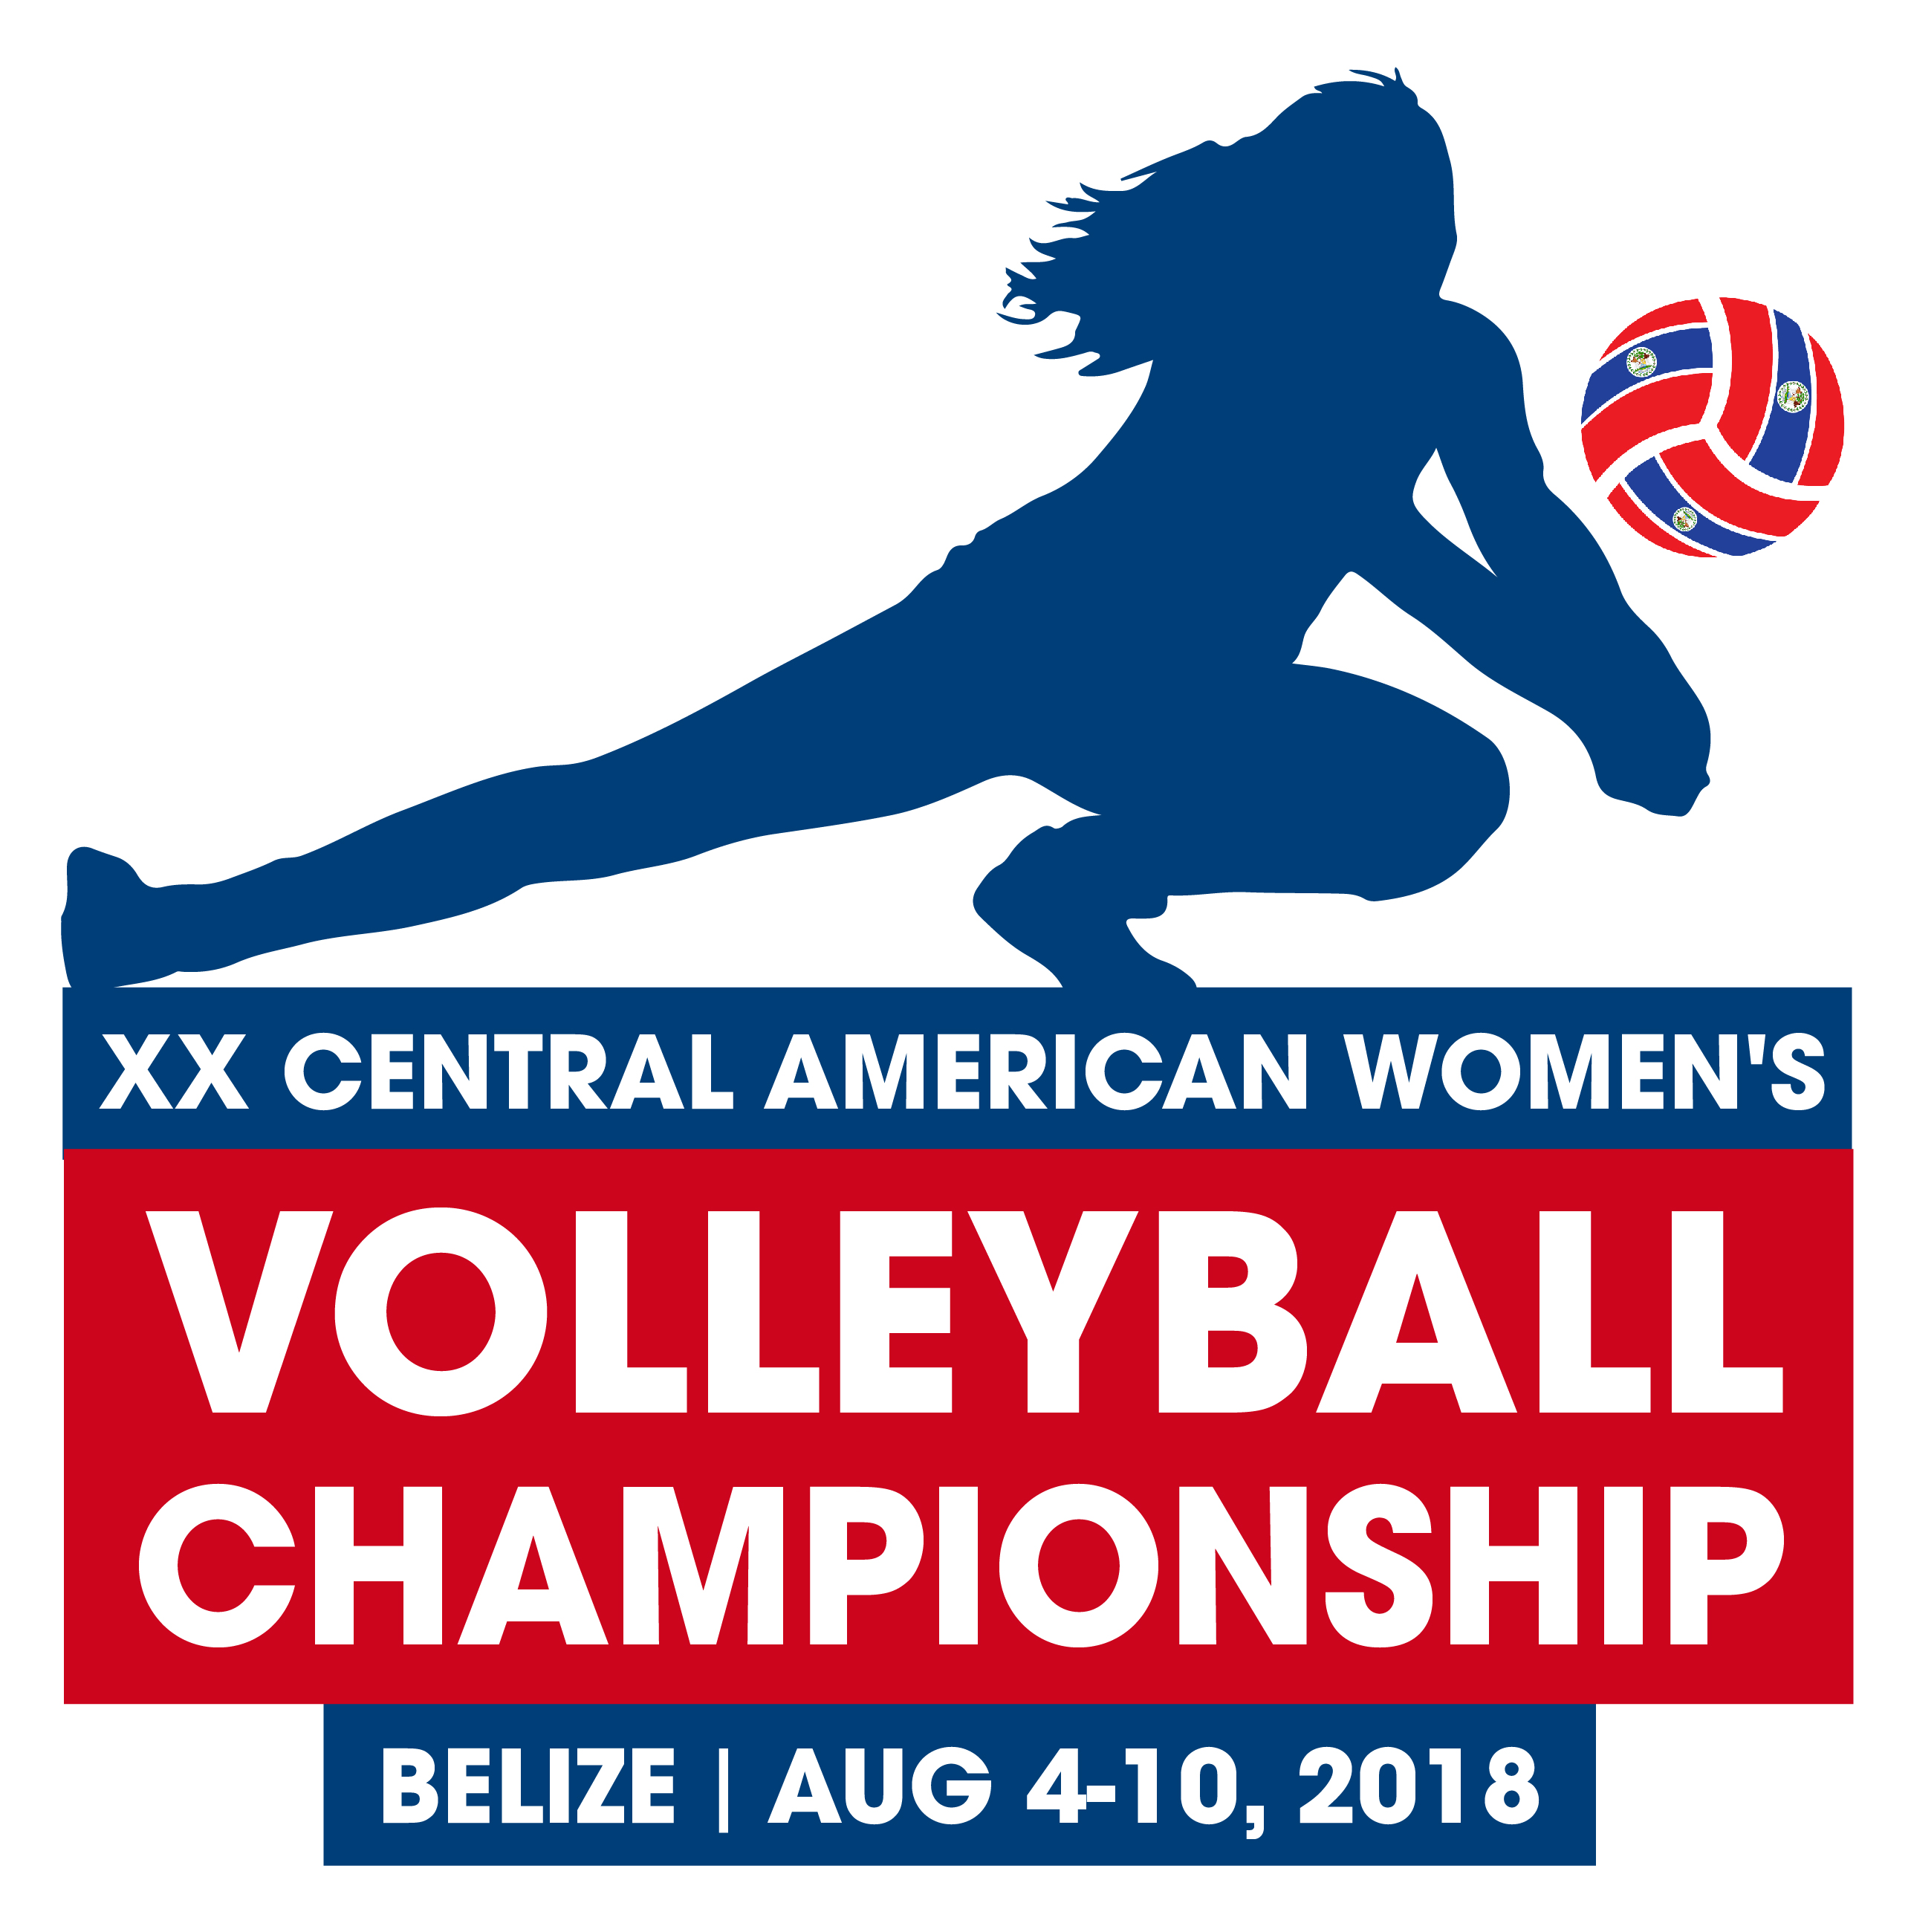 XX Copa Centroamericana Mayor Femenina, Belize 2018